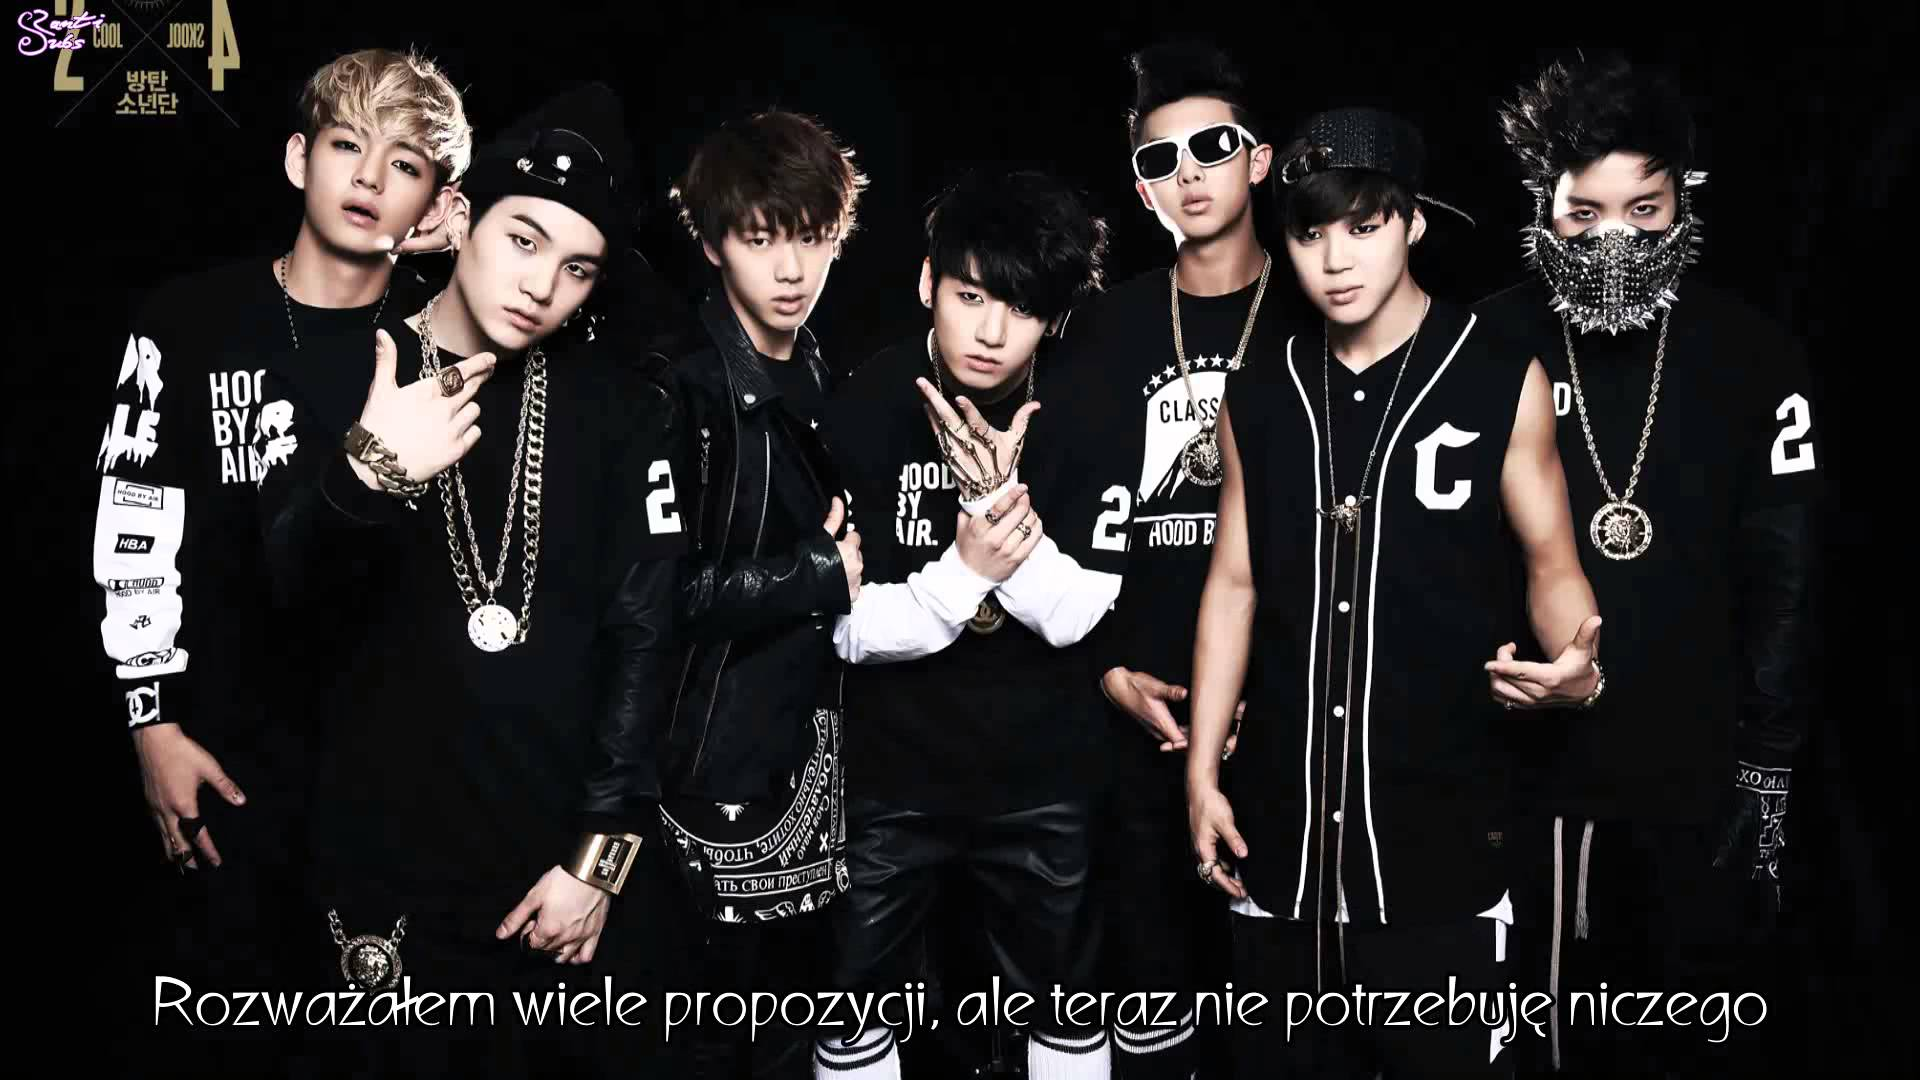 ♫ BTS wallpaper ♫